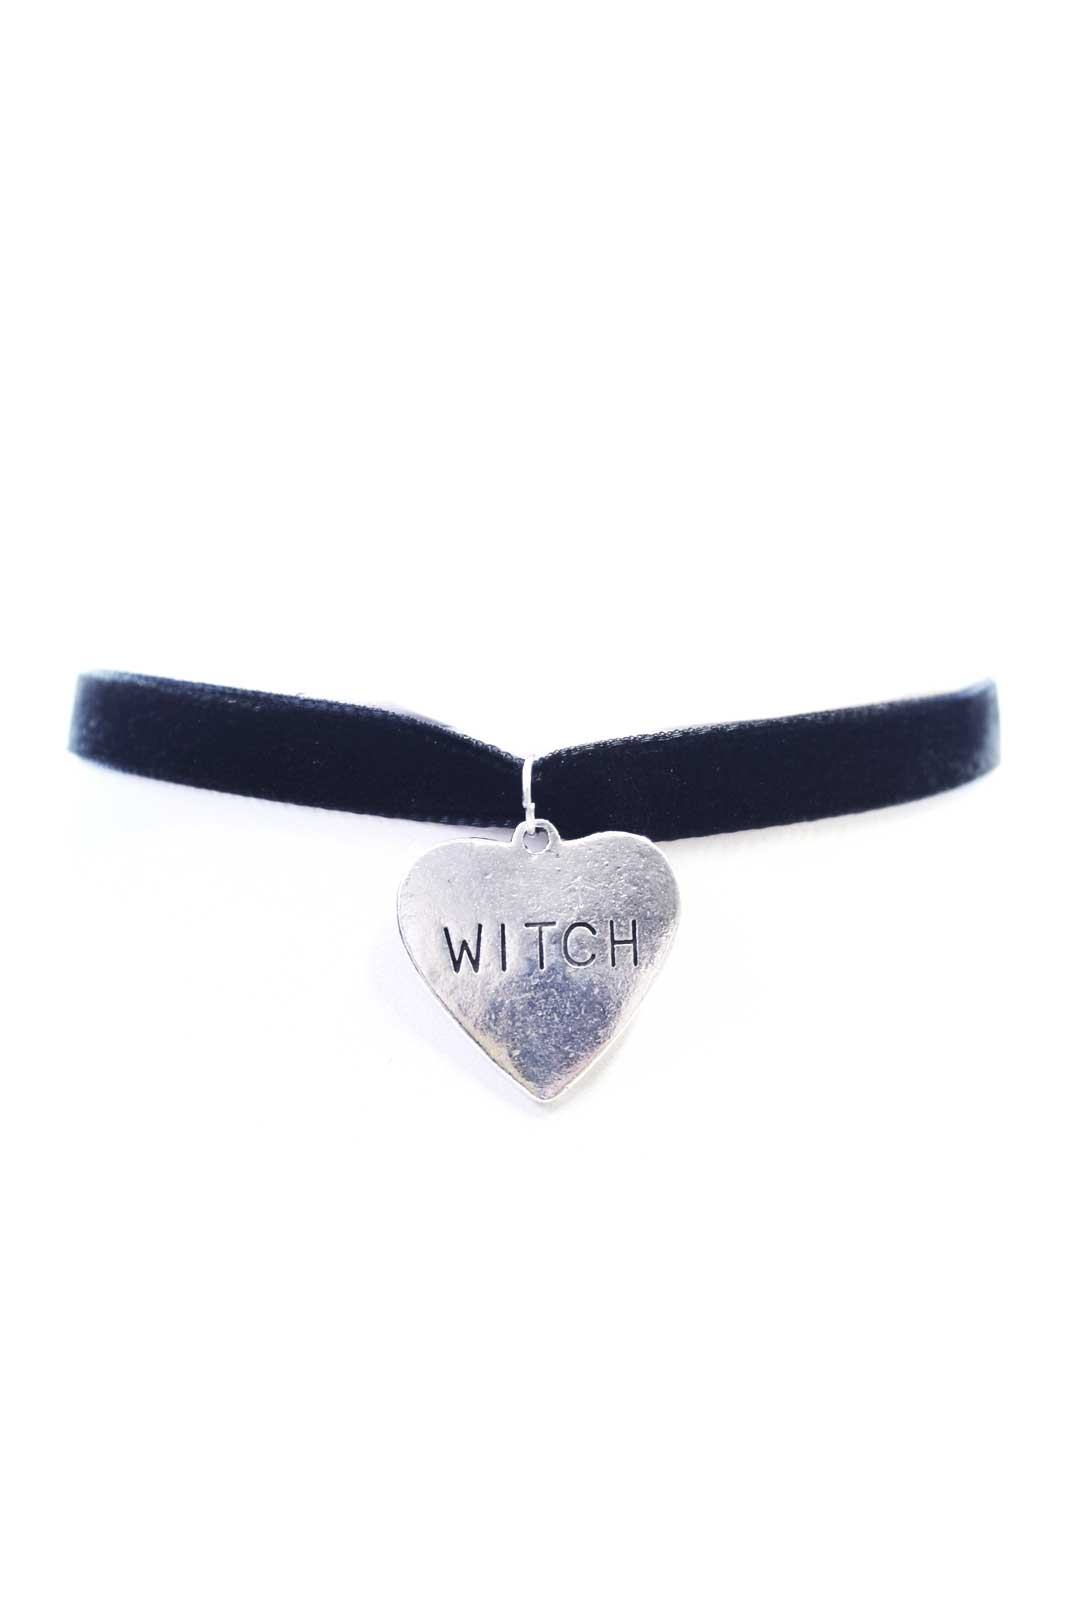 Witch Heart Velvet Choker Black